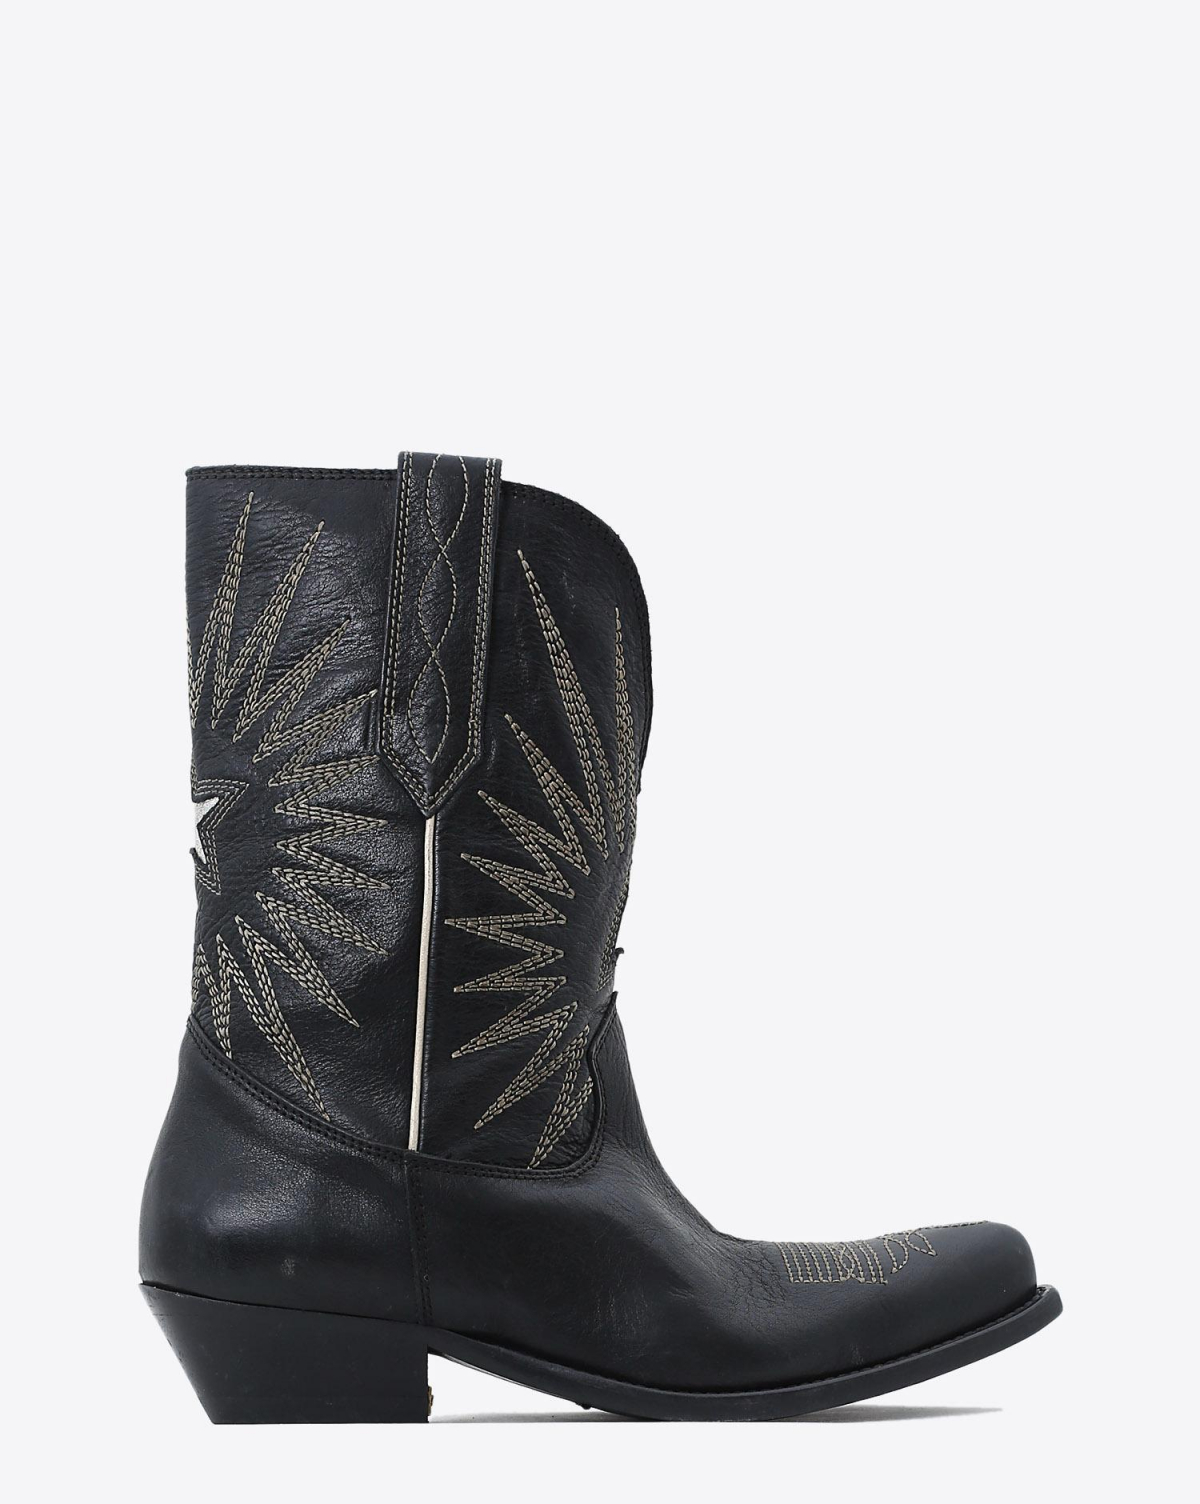 Golden Goose Woman Chaussures Collection Boots Wish Star Low - Black Leather